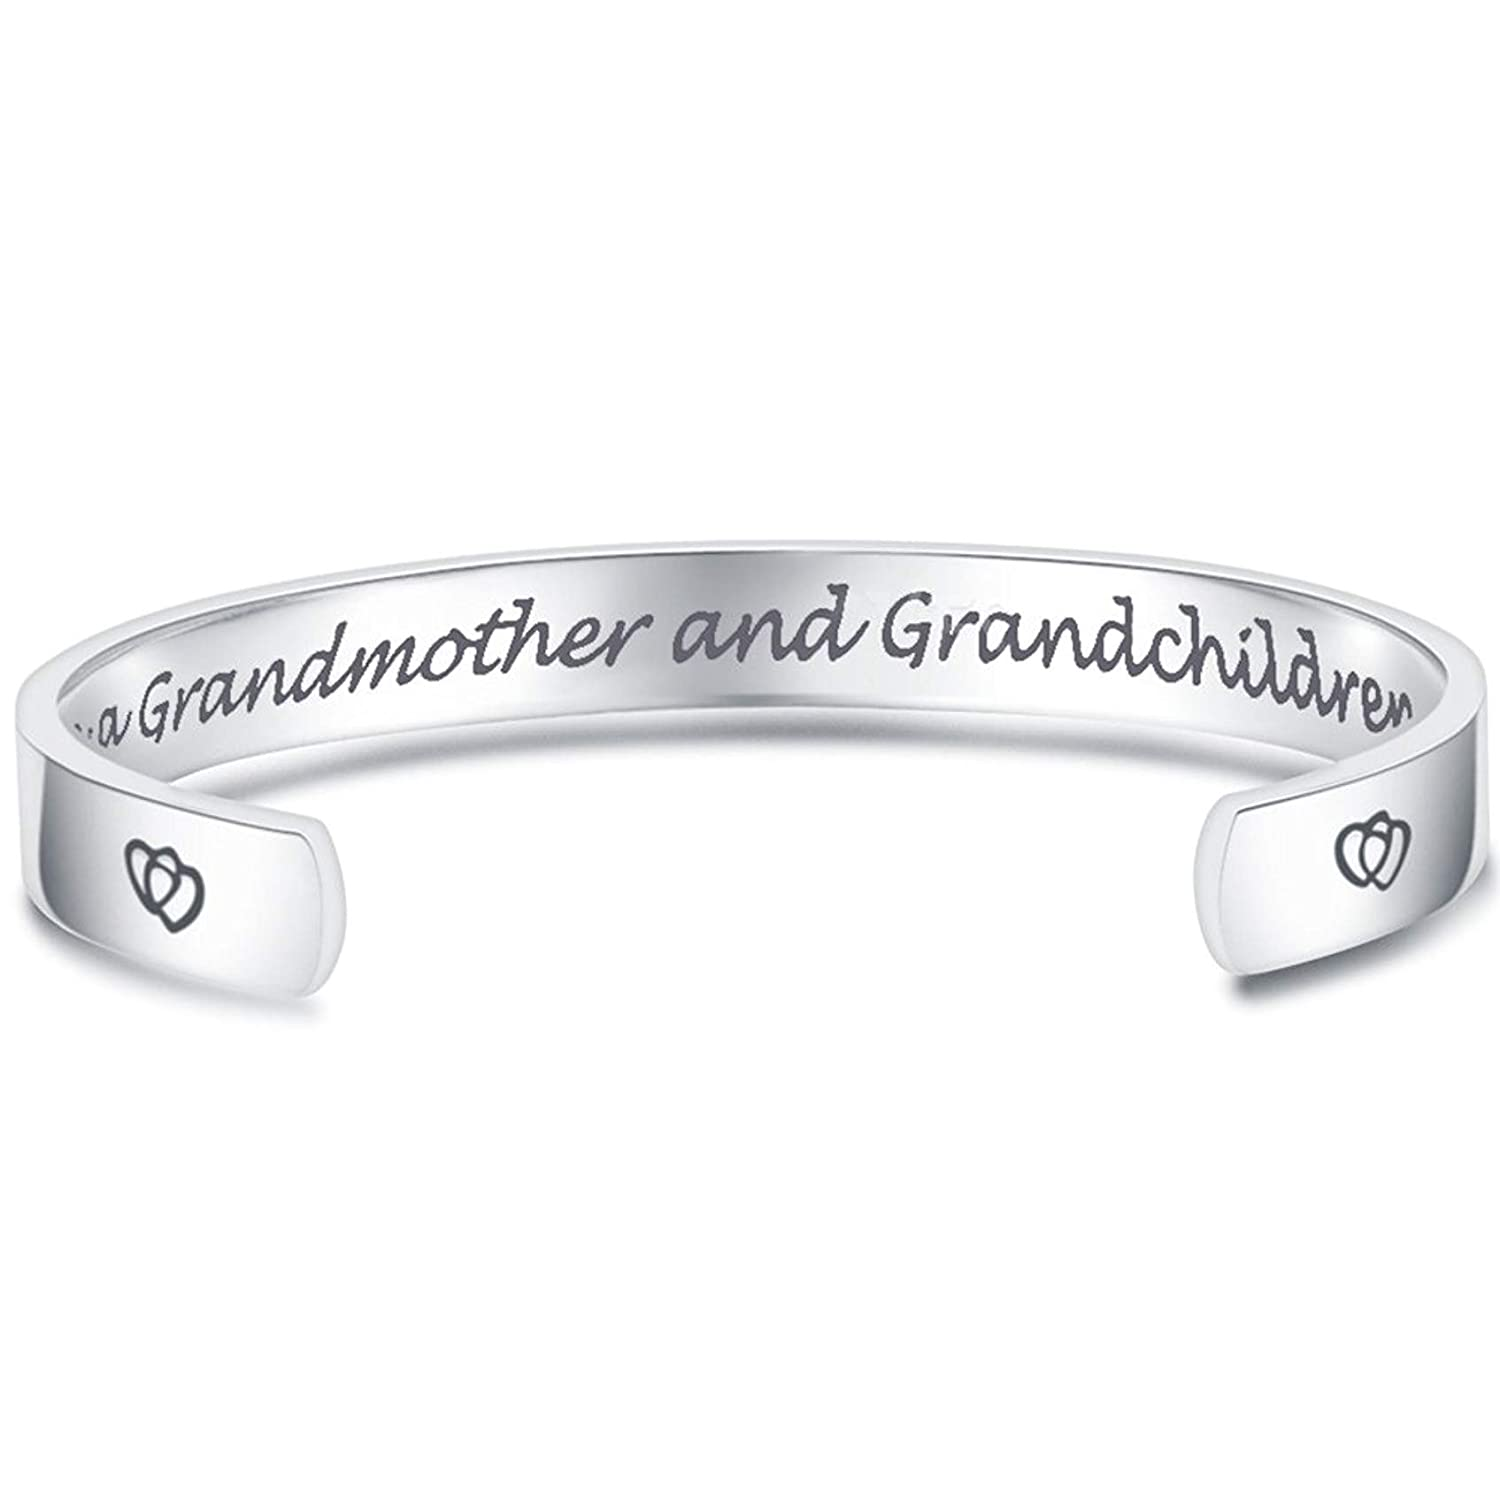 Jude Jewelers Love Between a Grandmother and Grandchildren is Forever Bracelet Bangle Birthday Gifts (Love Between a Grandmother and Grandchildren is Forever.) B0796BHGLB_US